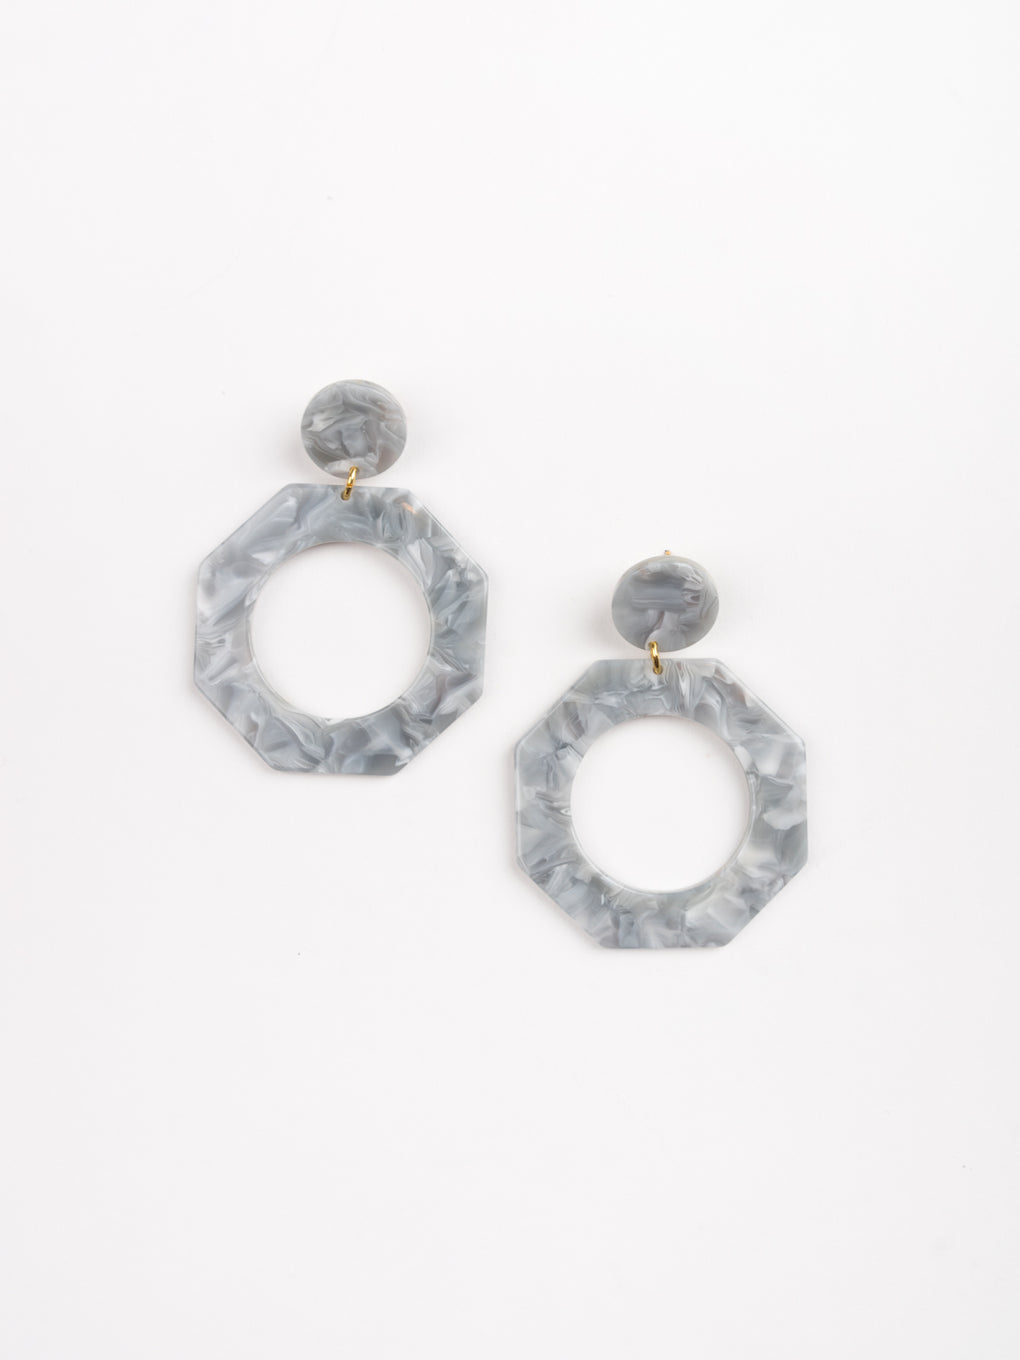 womens earrings, grey geometric hoops attached to round stud, lightweight acetate, Apres ski